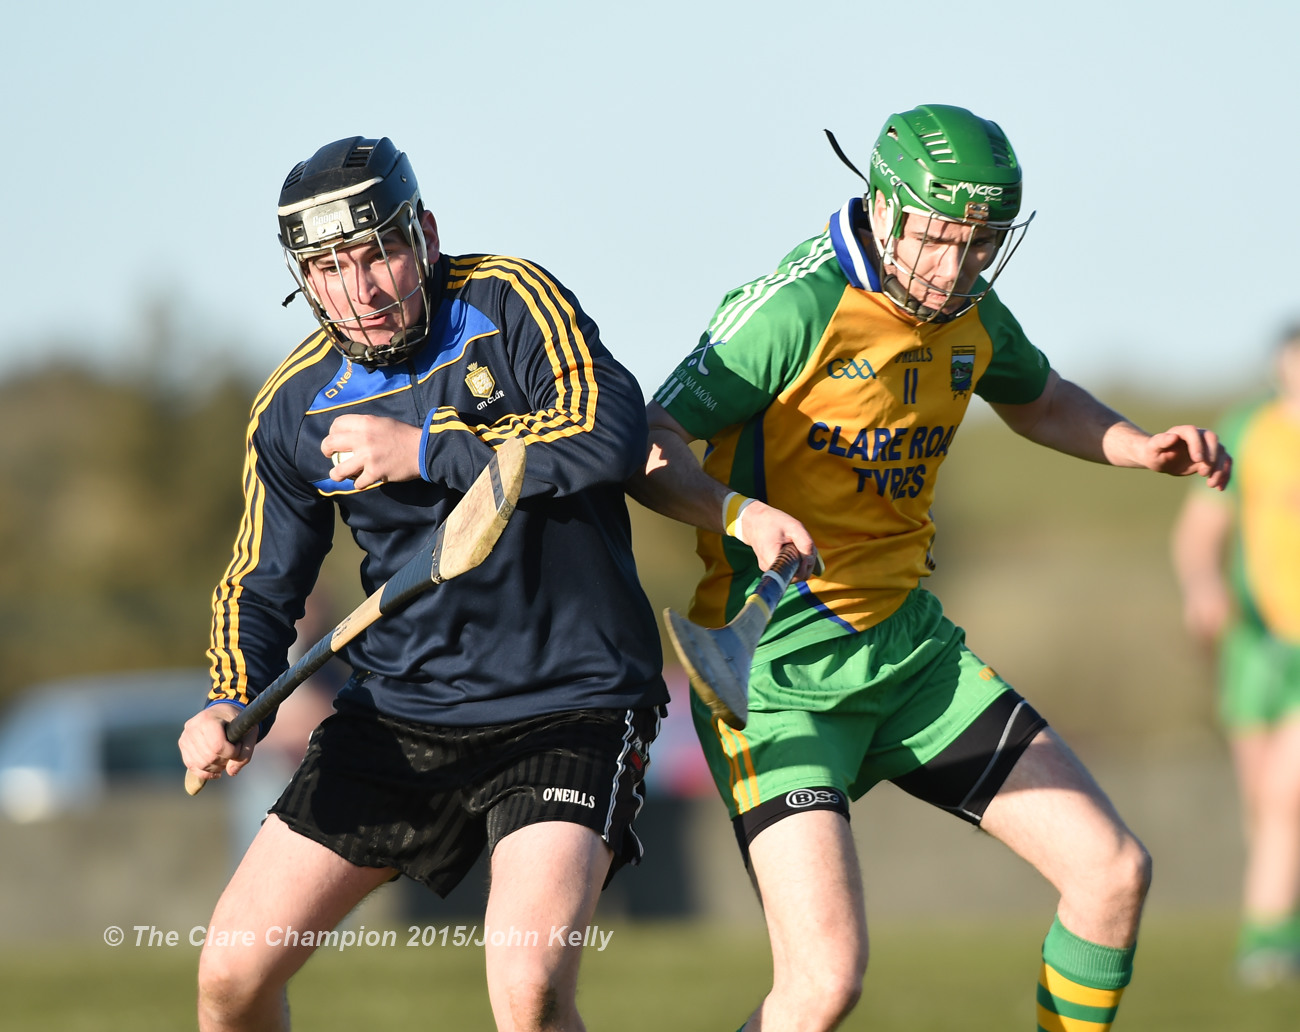 Johnathan Griffey of Clarecastle in action against Conor Tierney of Inagh-Kilnamona during their Clare Champion Cup game in Inagh. Photograph by John Kelly.